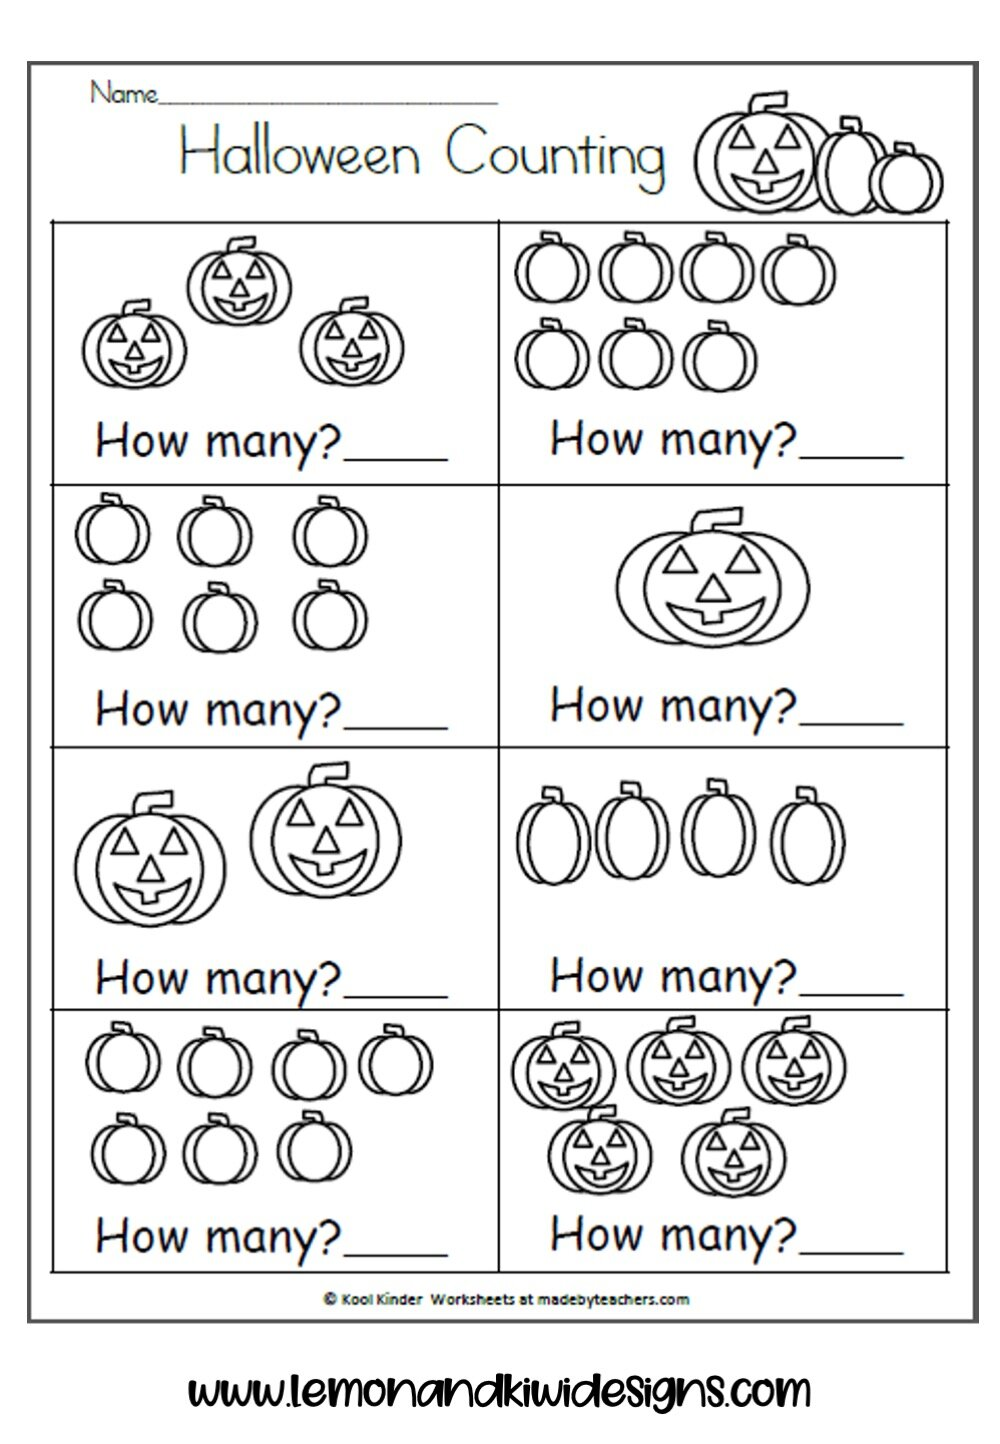 Free Spooktacular Halloween Math Worksheets For Kids Lemon Kiwi Designs